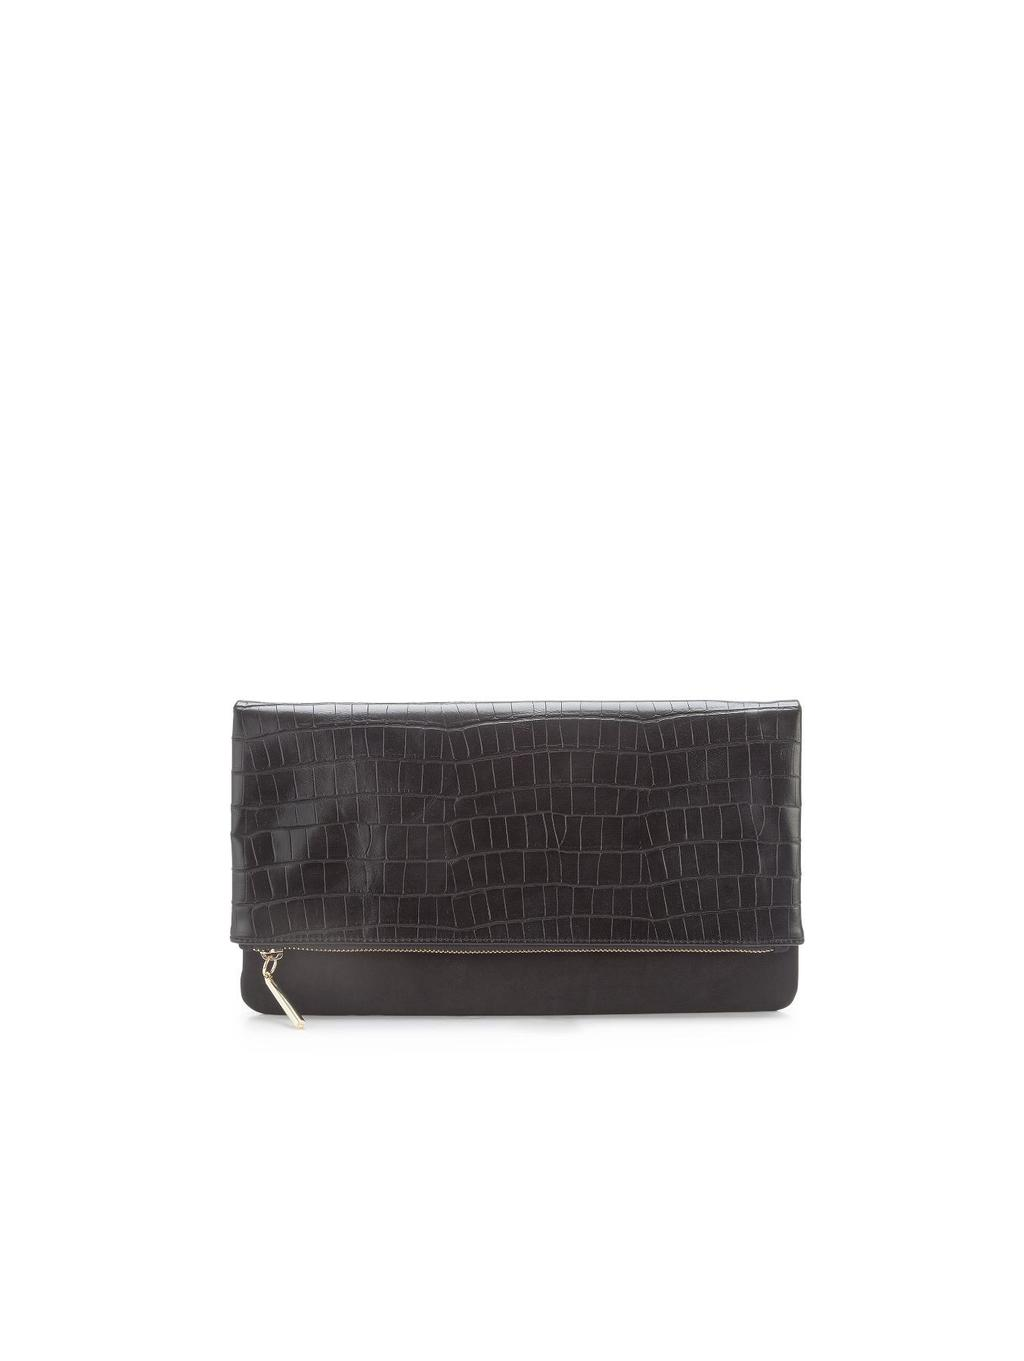 Clutch Bag, Black - predominant colour: black; occasions: evening, occasion; type of pattern: standard; style: clutch; length: hand carry; size: small; material: leather; pattern: plain; finish: plain; season: s/s 2014